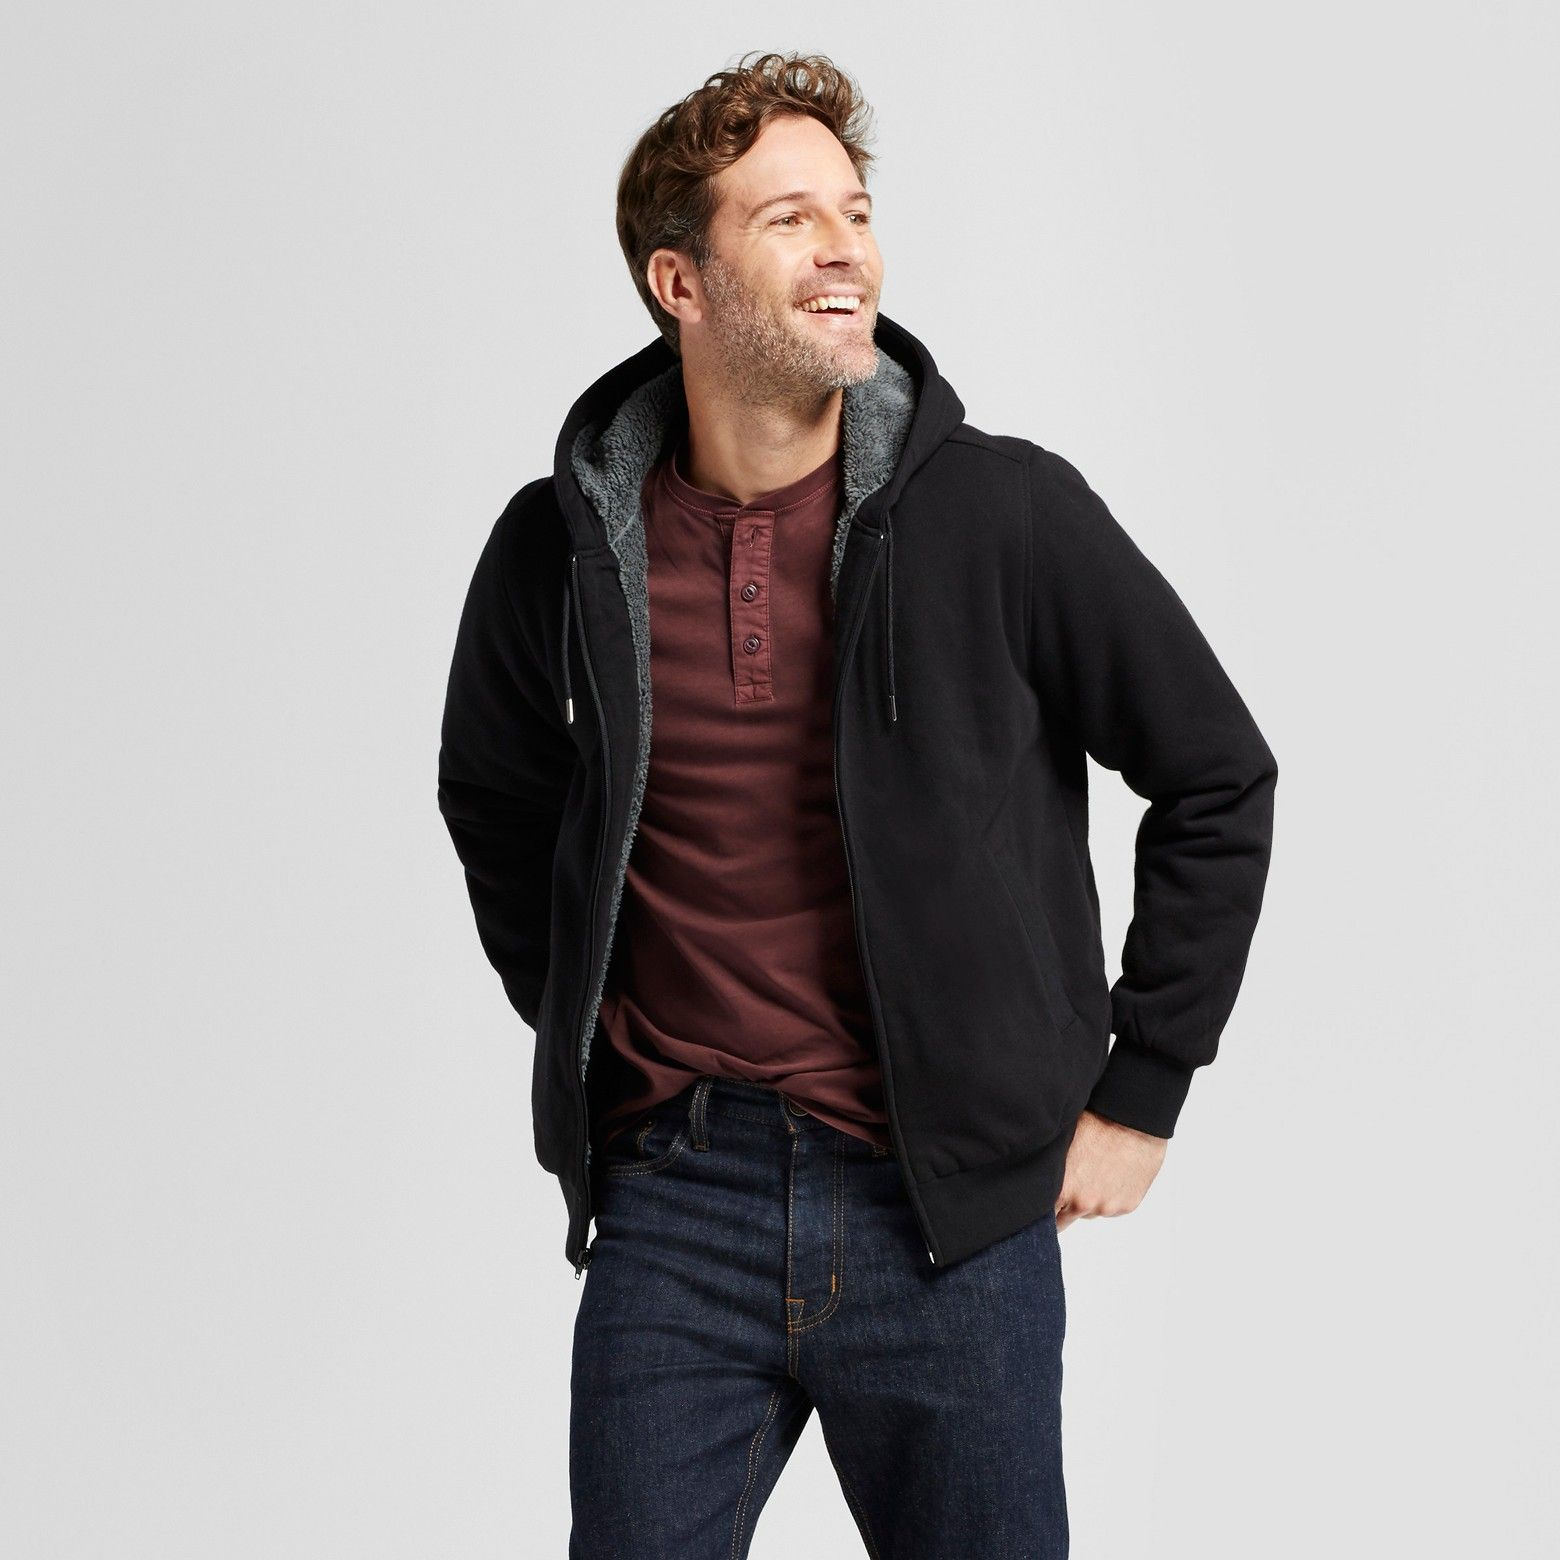 When it comes to casual comfort, there's no better way to